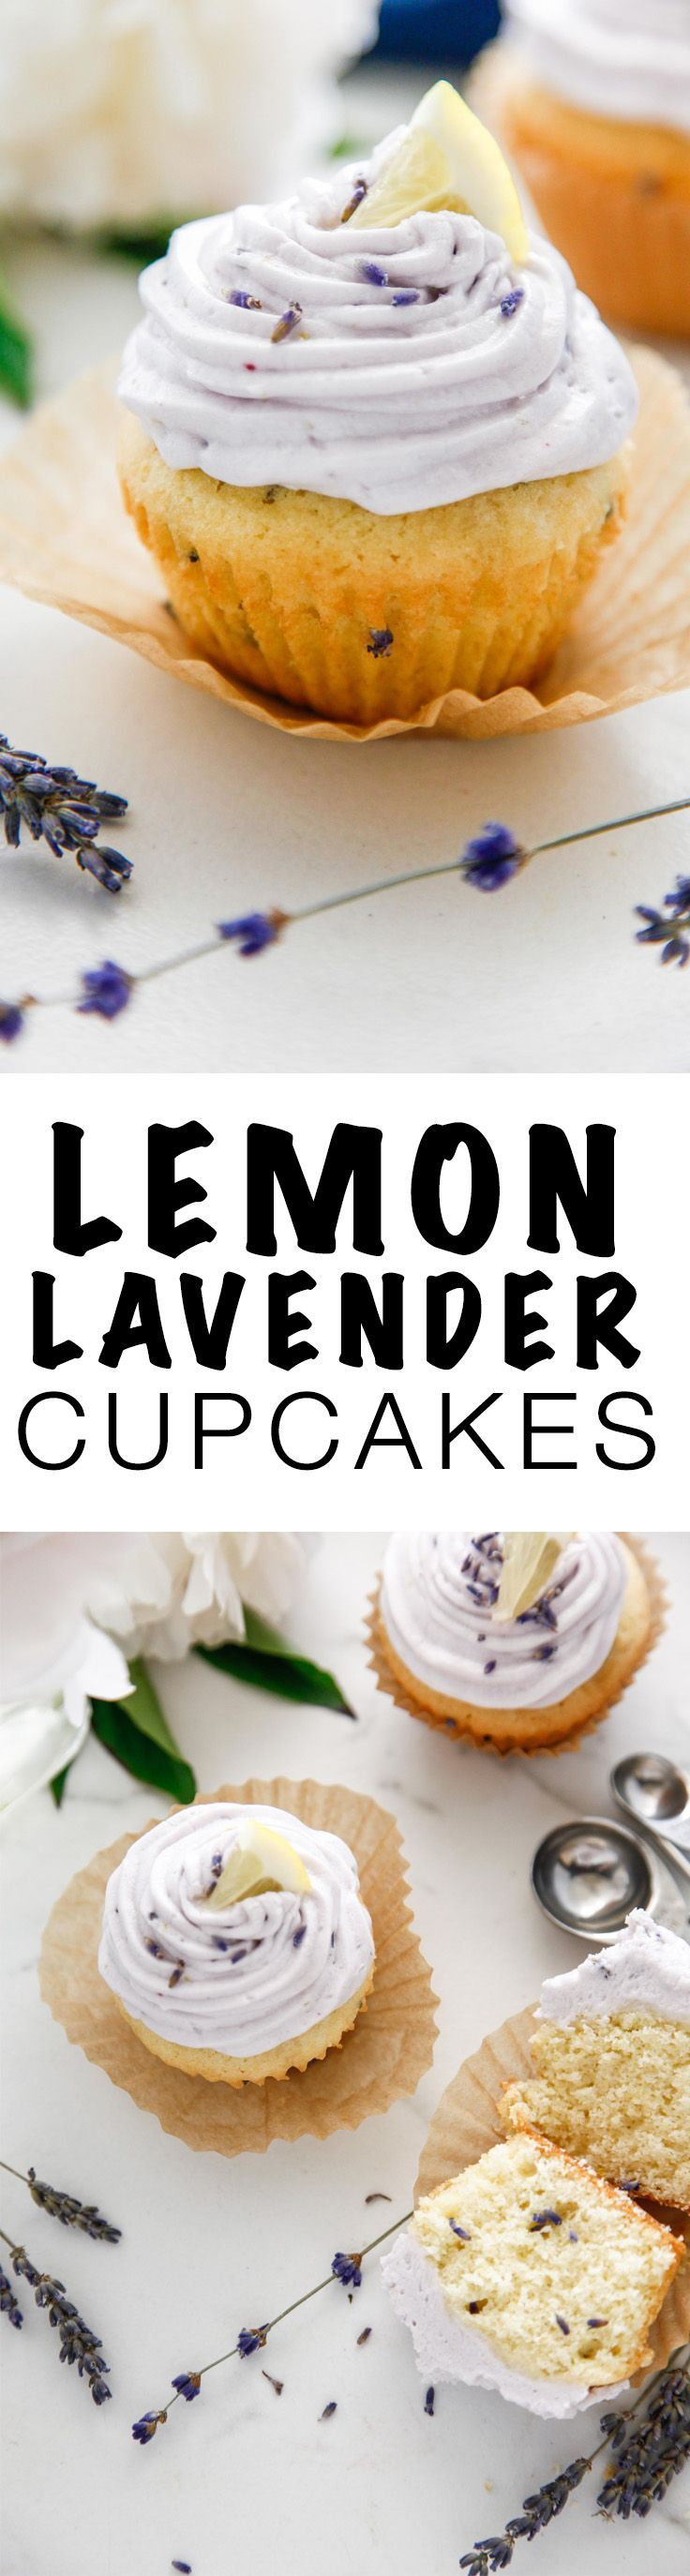 Celebrate summer baking with this Lemon Lavender Cupcake recipe! These sweet treats are some of my favorite desserts! via @thebrooklyncook